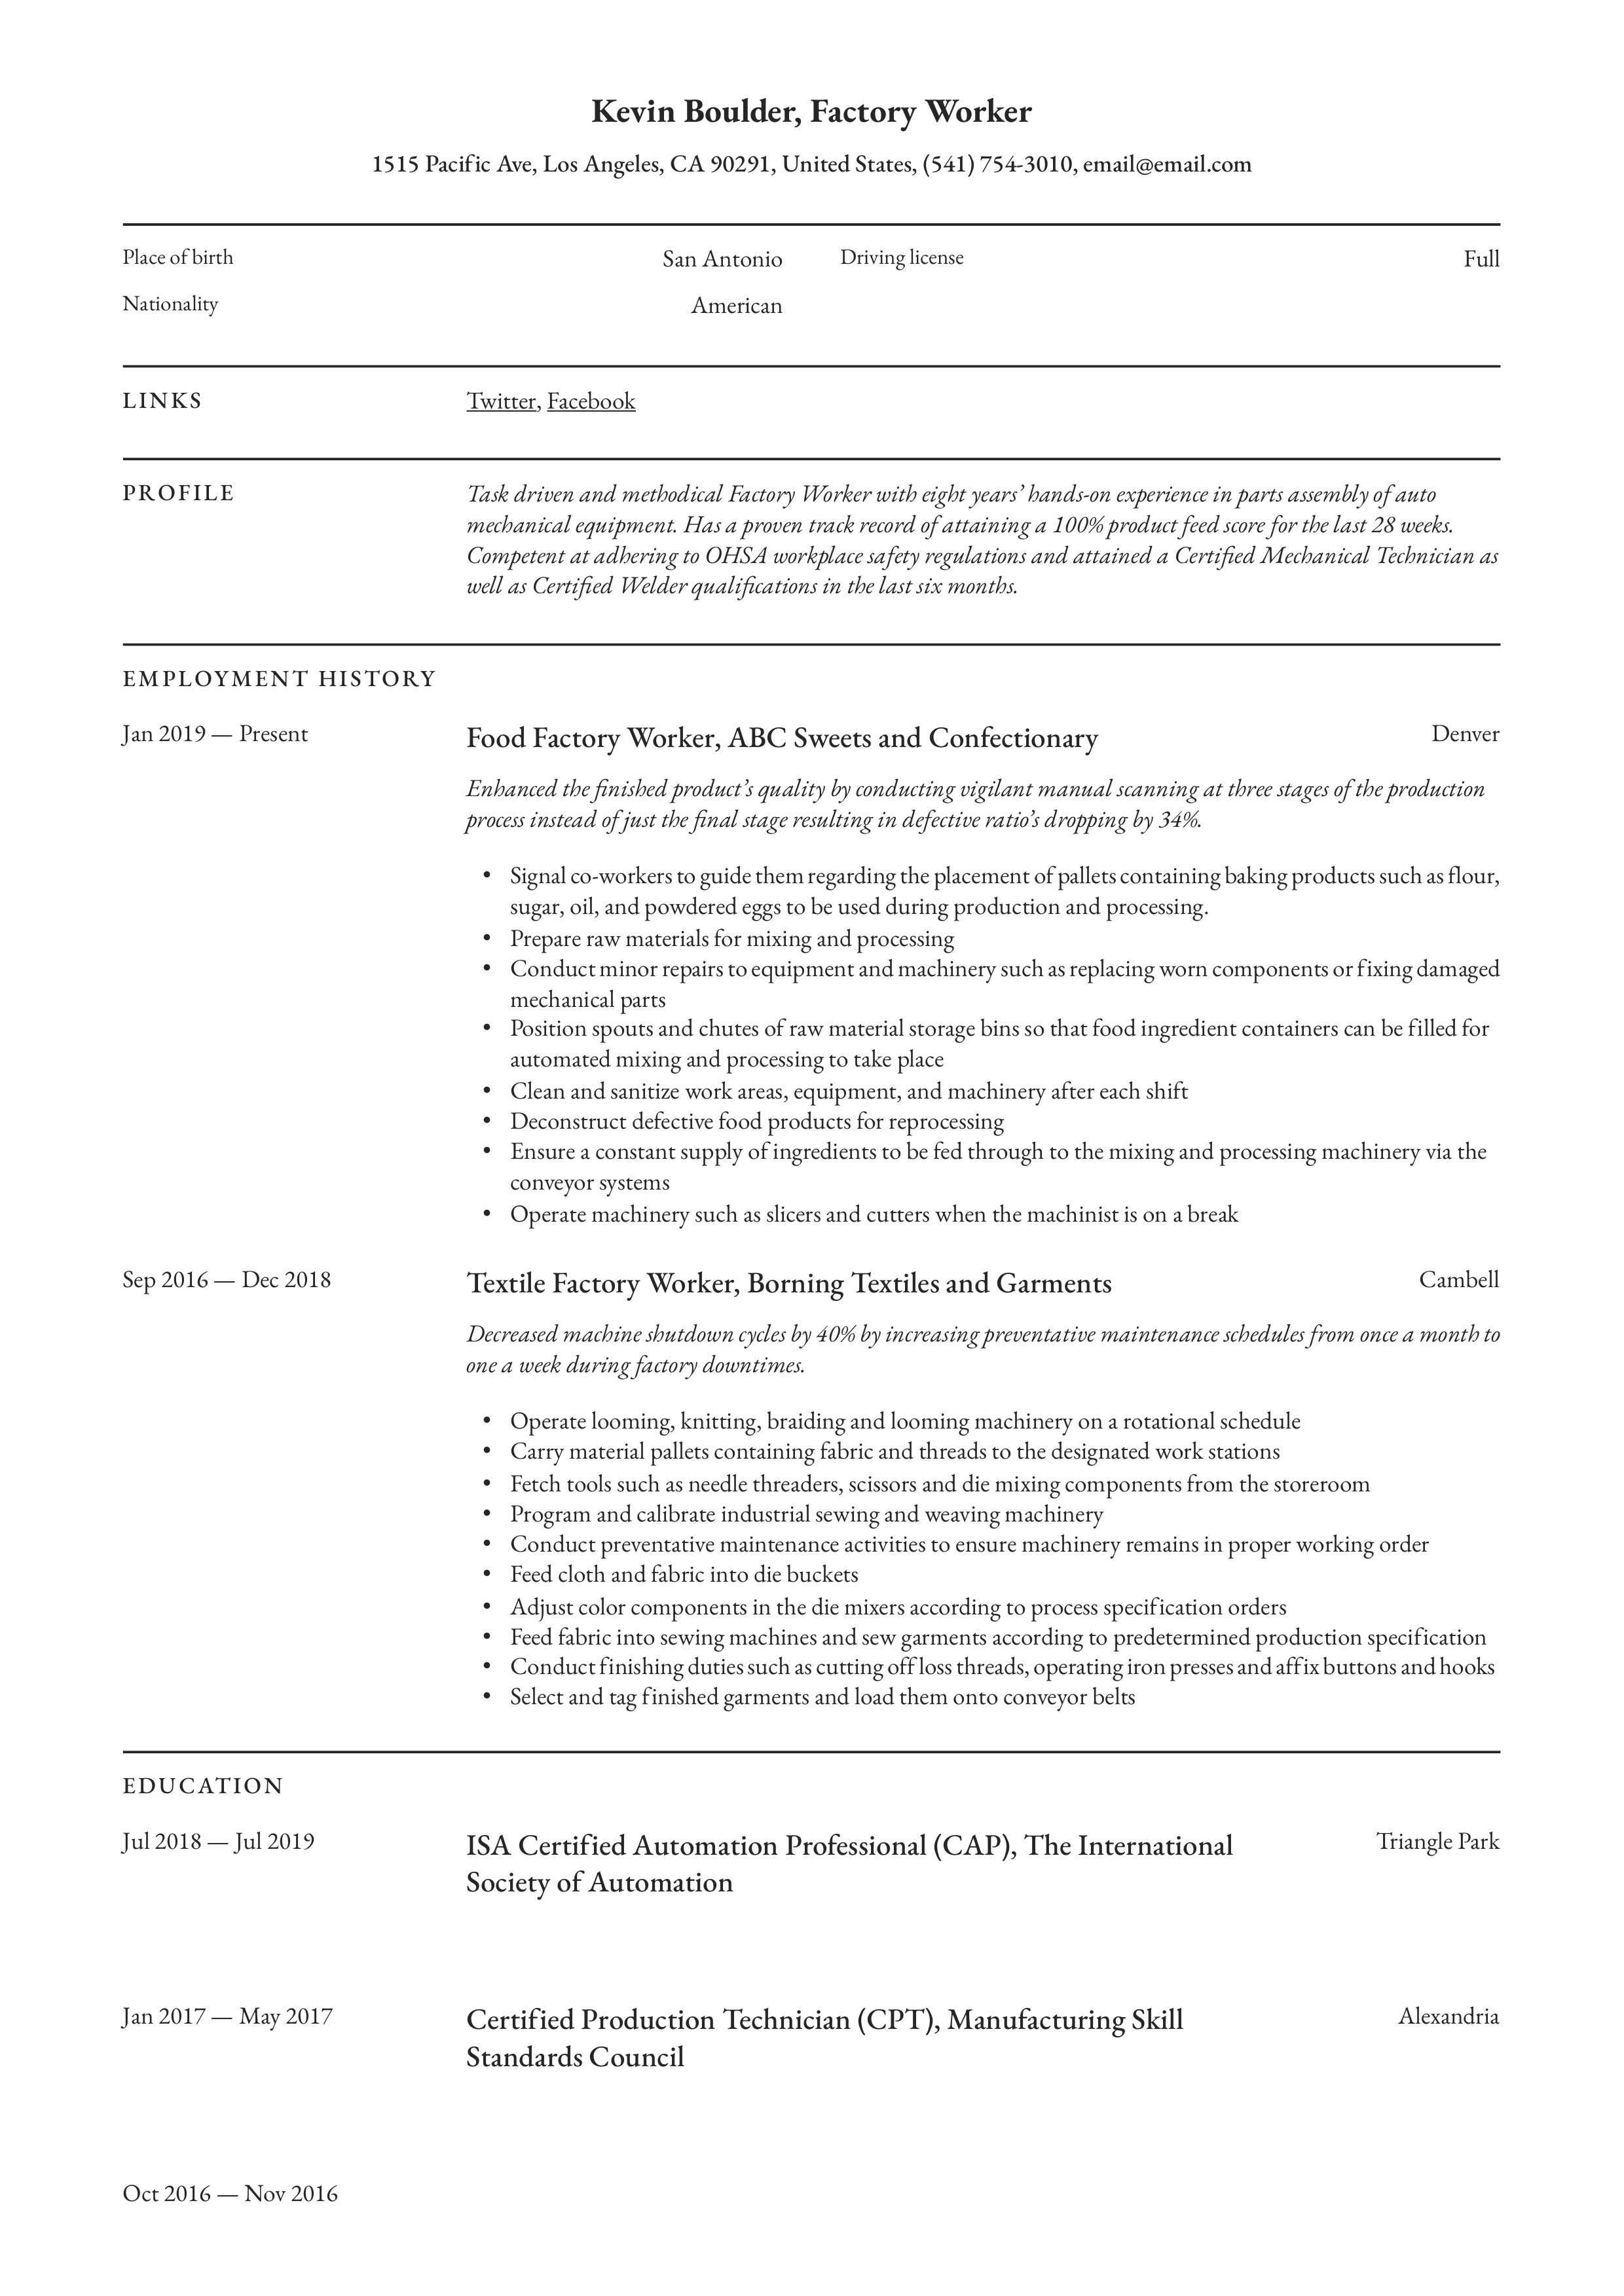 Resume Examples For Production Worker Louiesportsmouth Com Resume Examples Civil Engineer Resume Professional Resume Examples